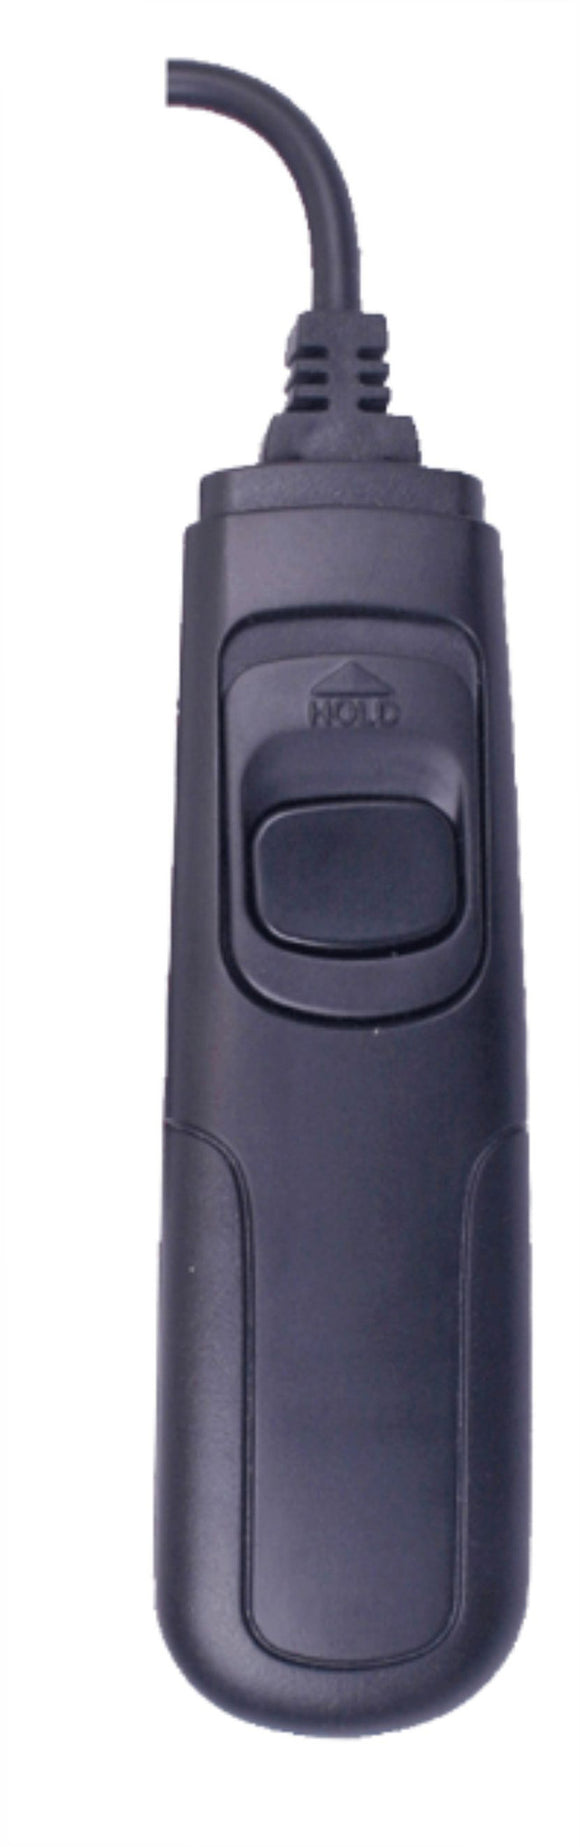 Wired Shutter Release for Canon Rebel 2.5mm